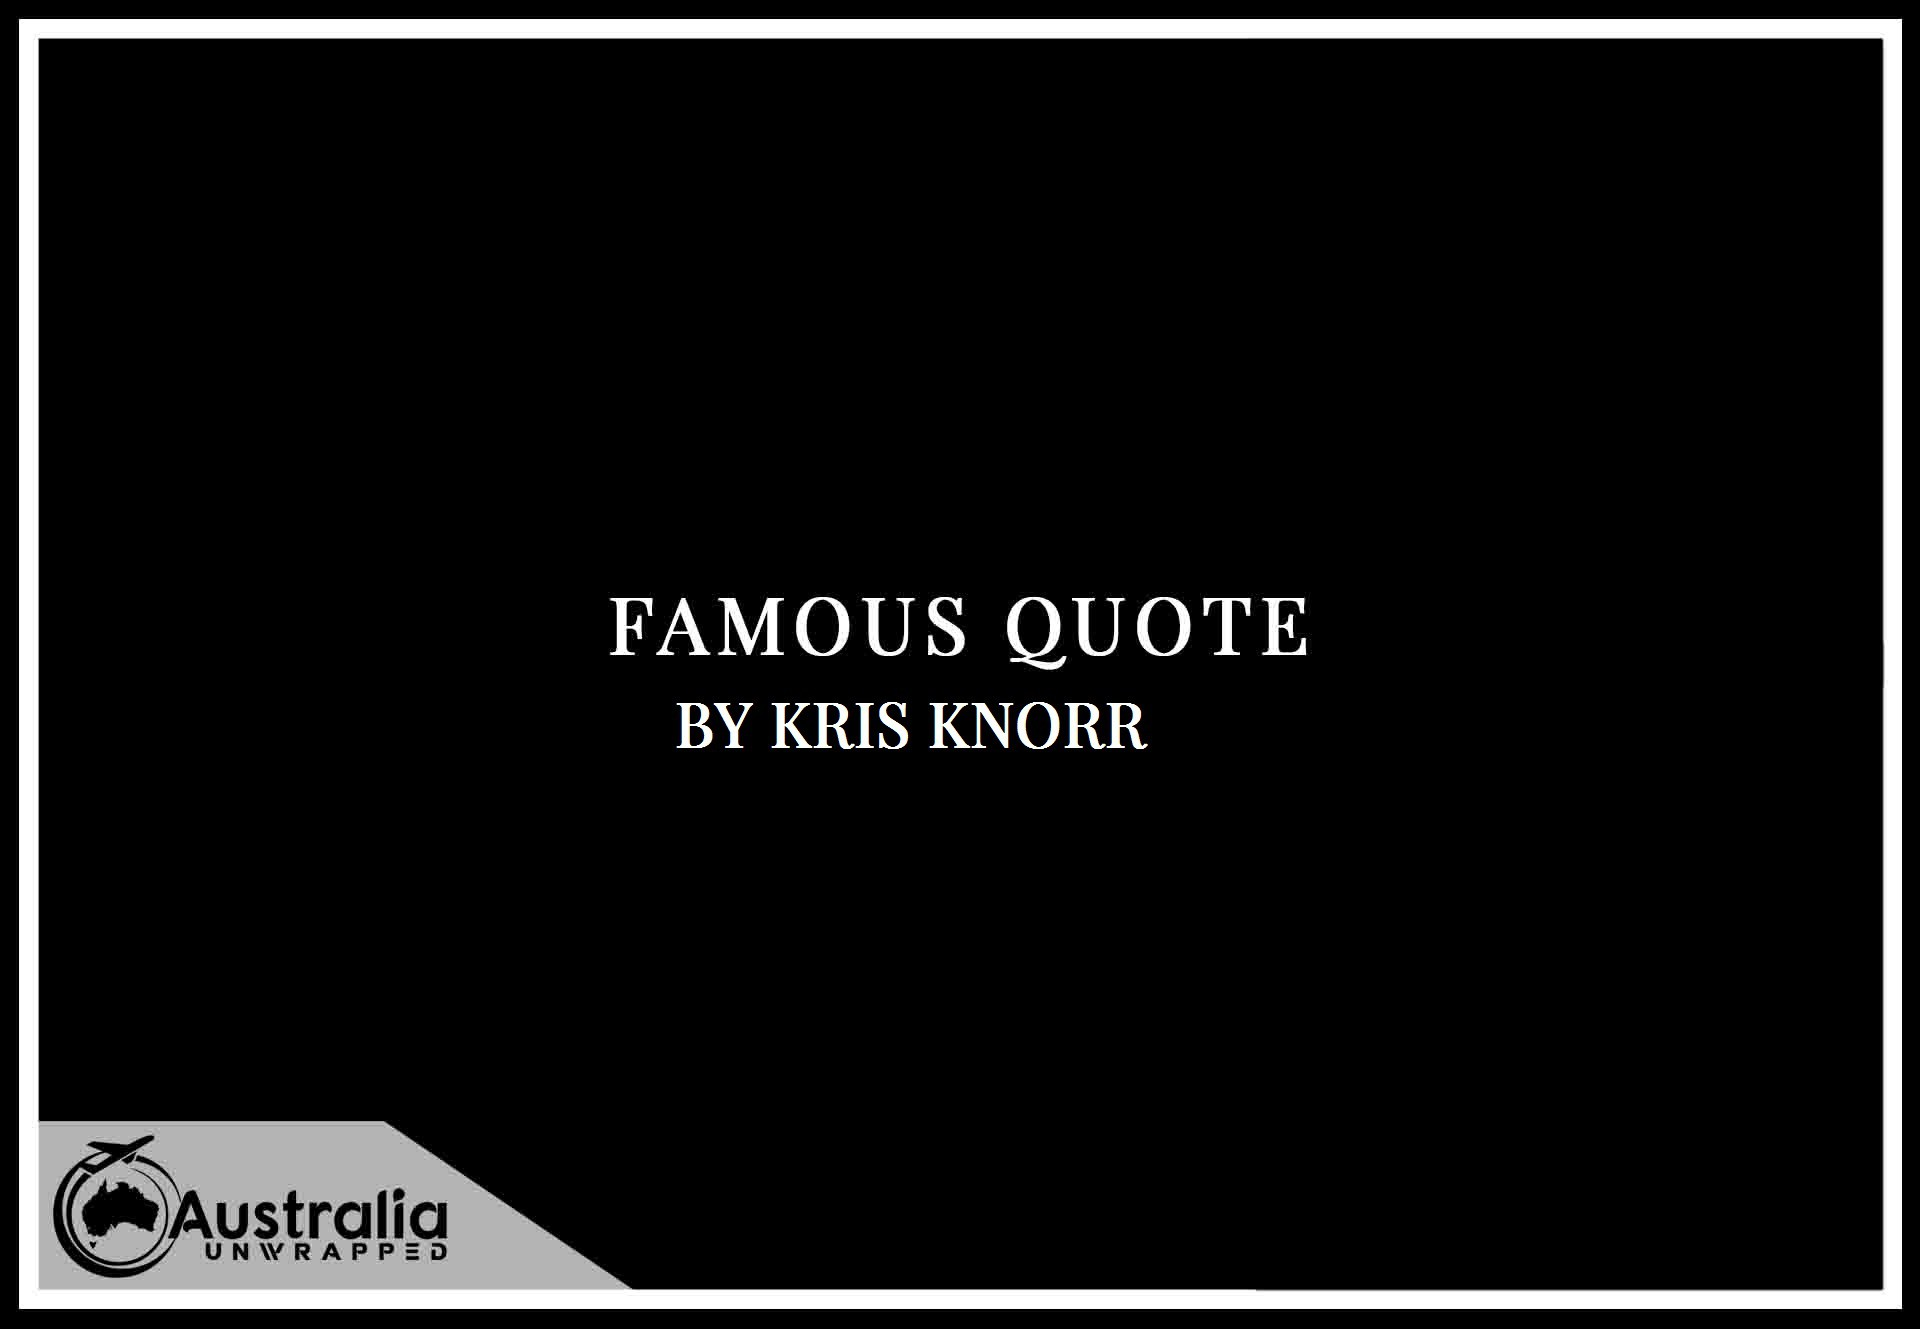 Kris Knorr's Top 1 Popular and Famous Quotes